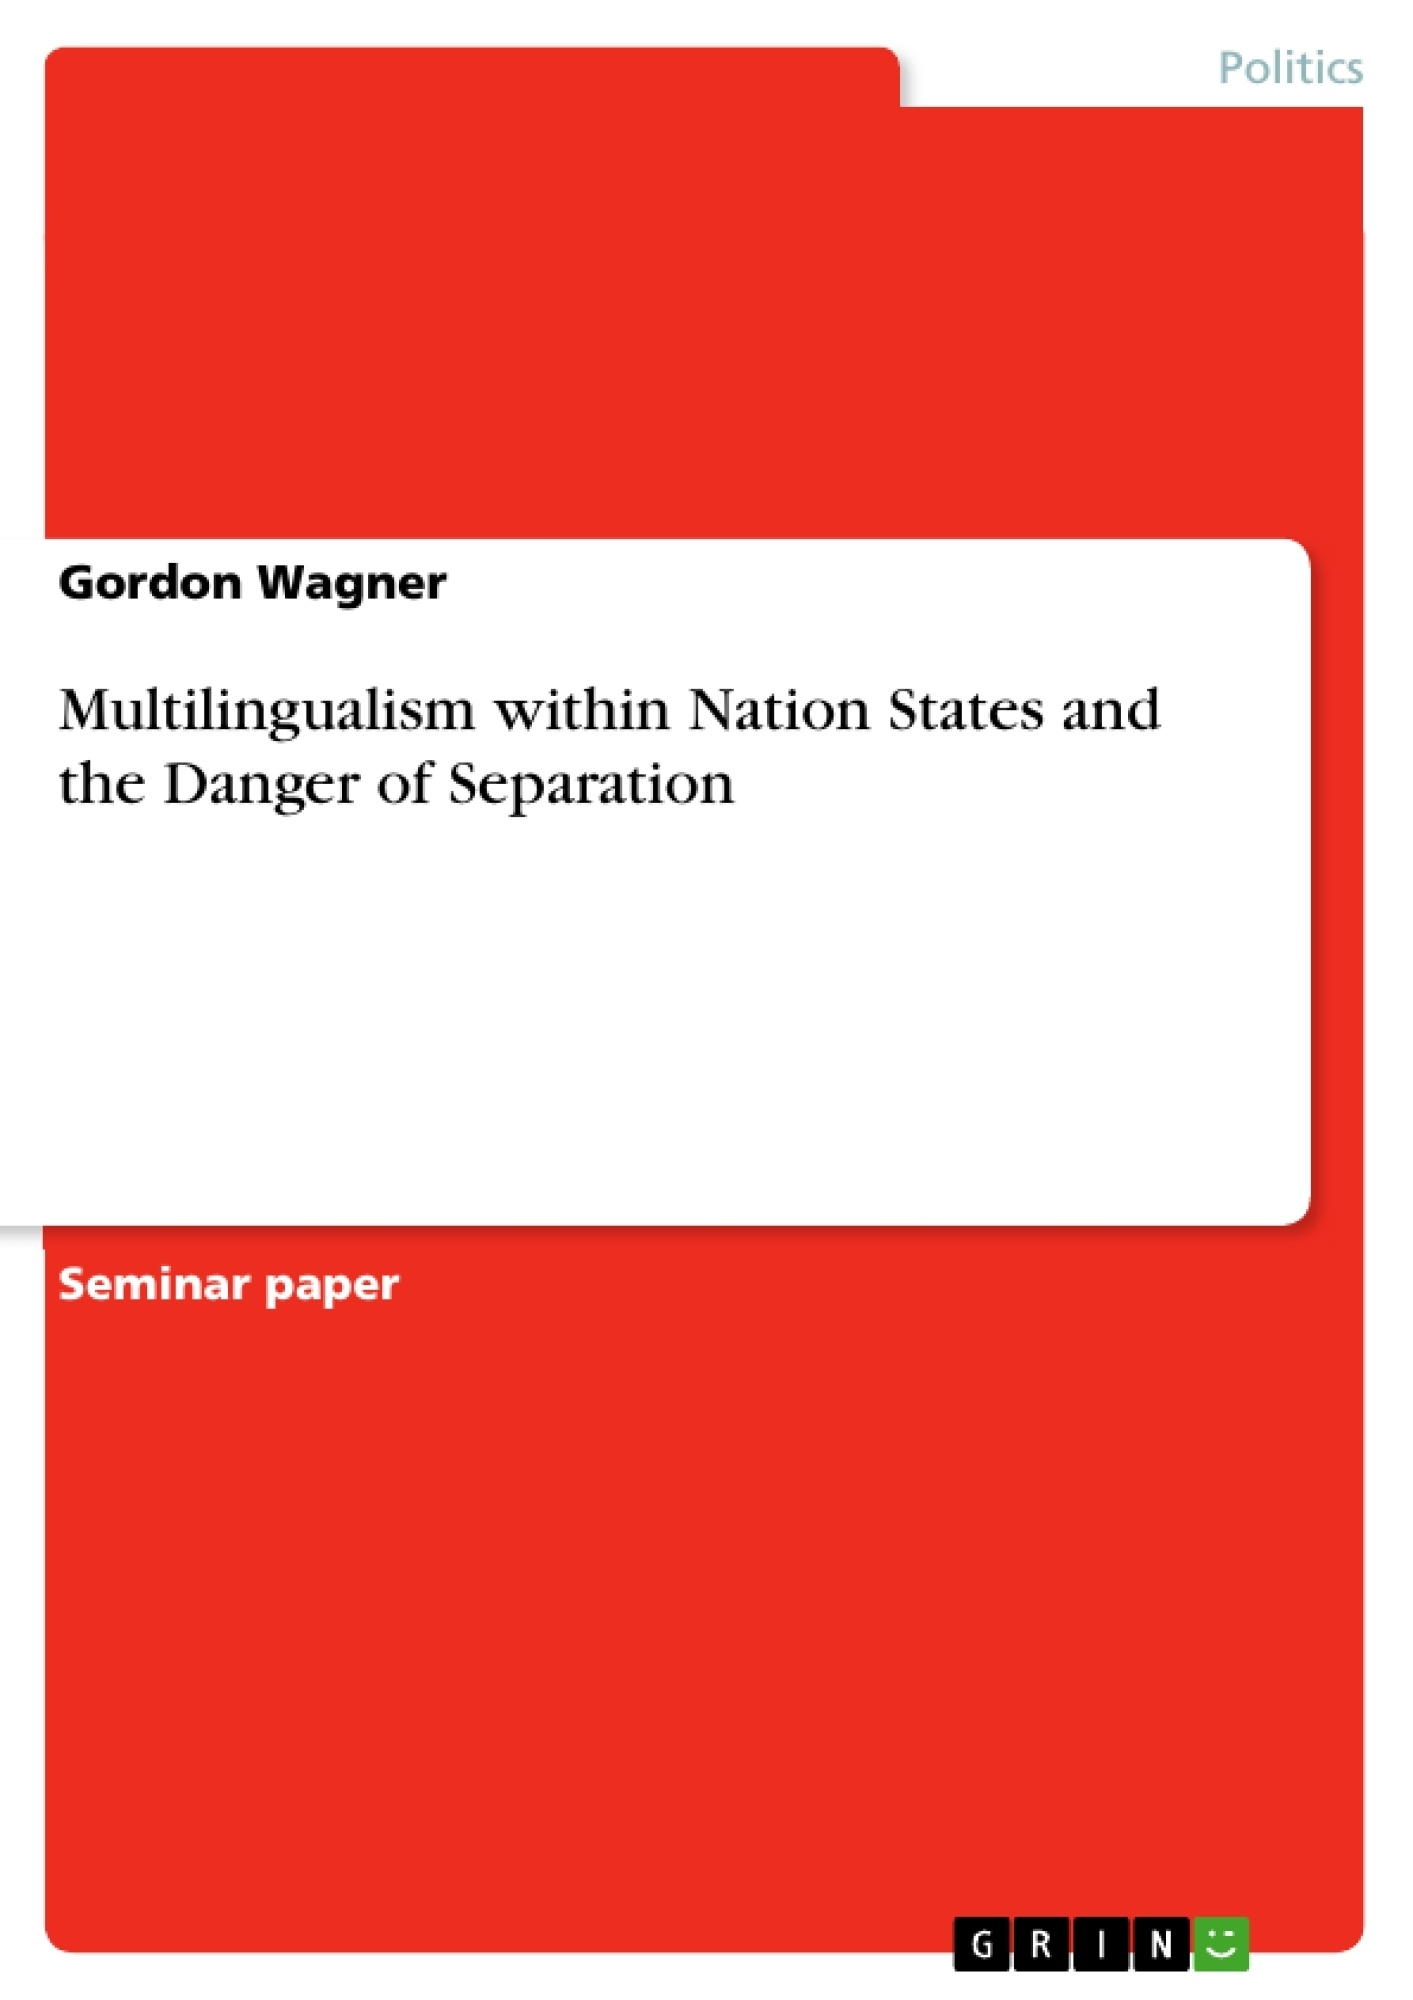 Title: Multilingualism within Nation States and the Danger of Separation